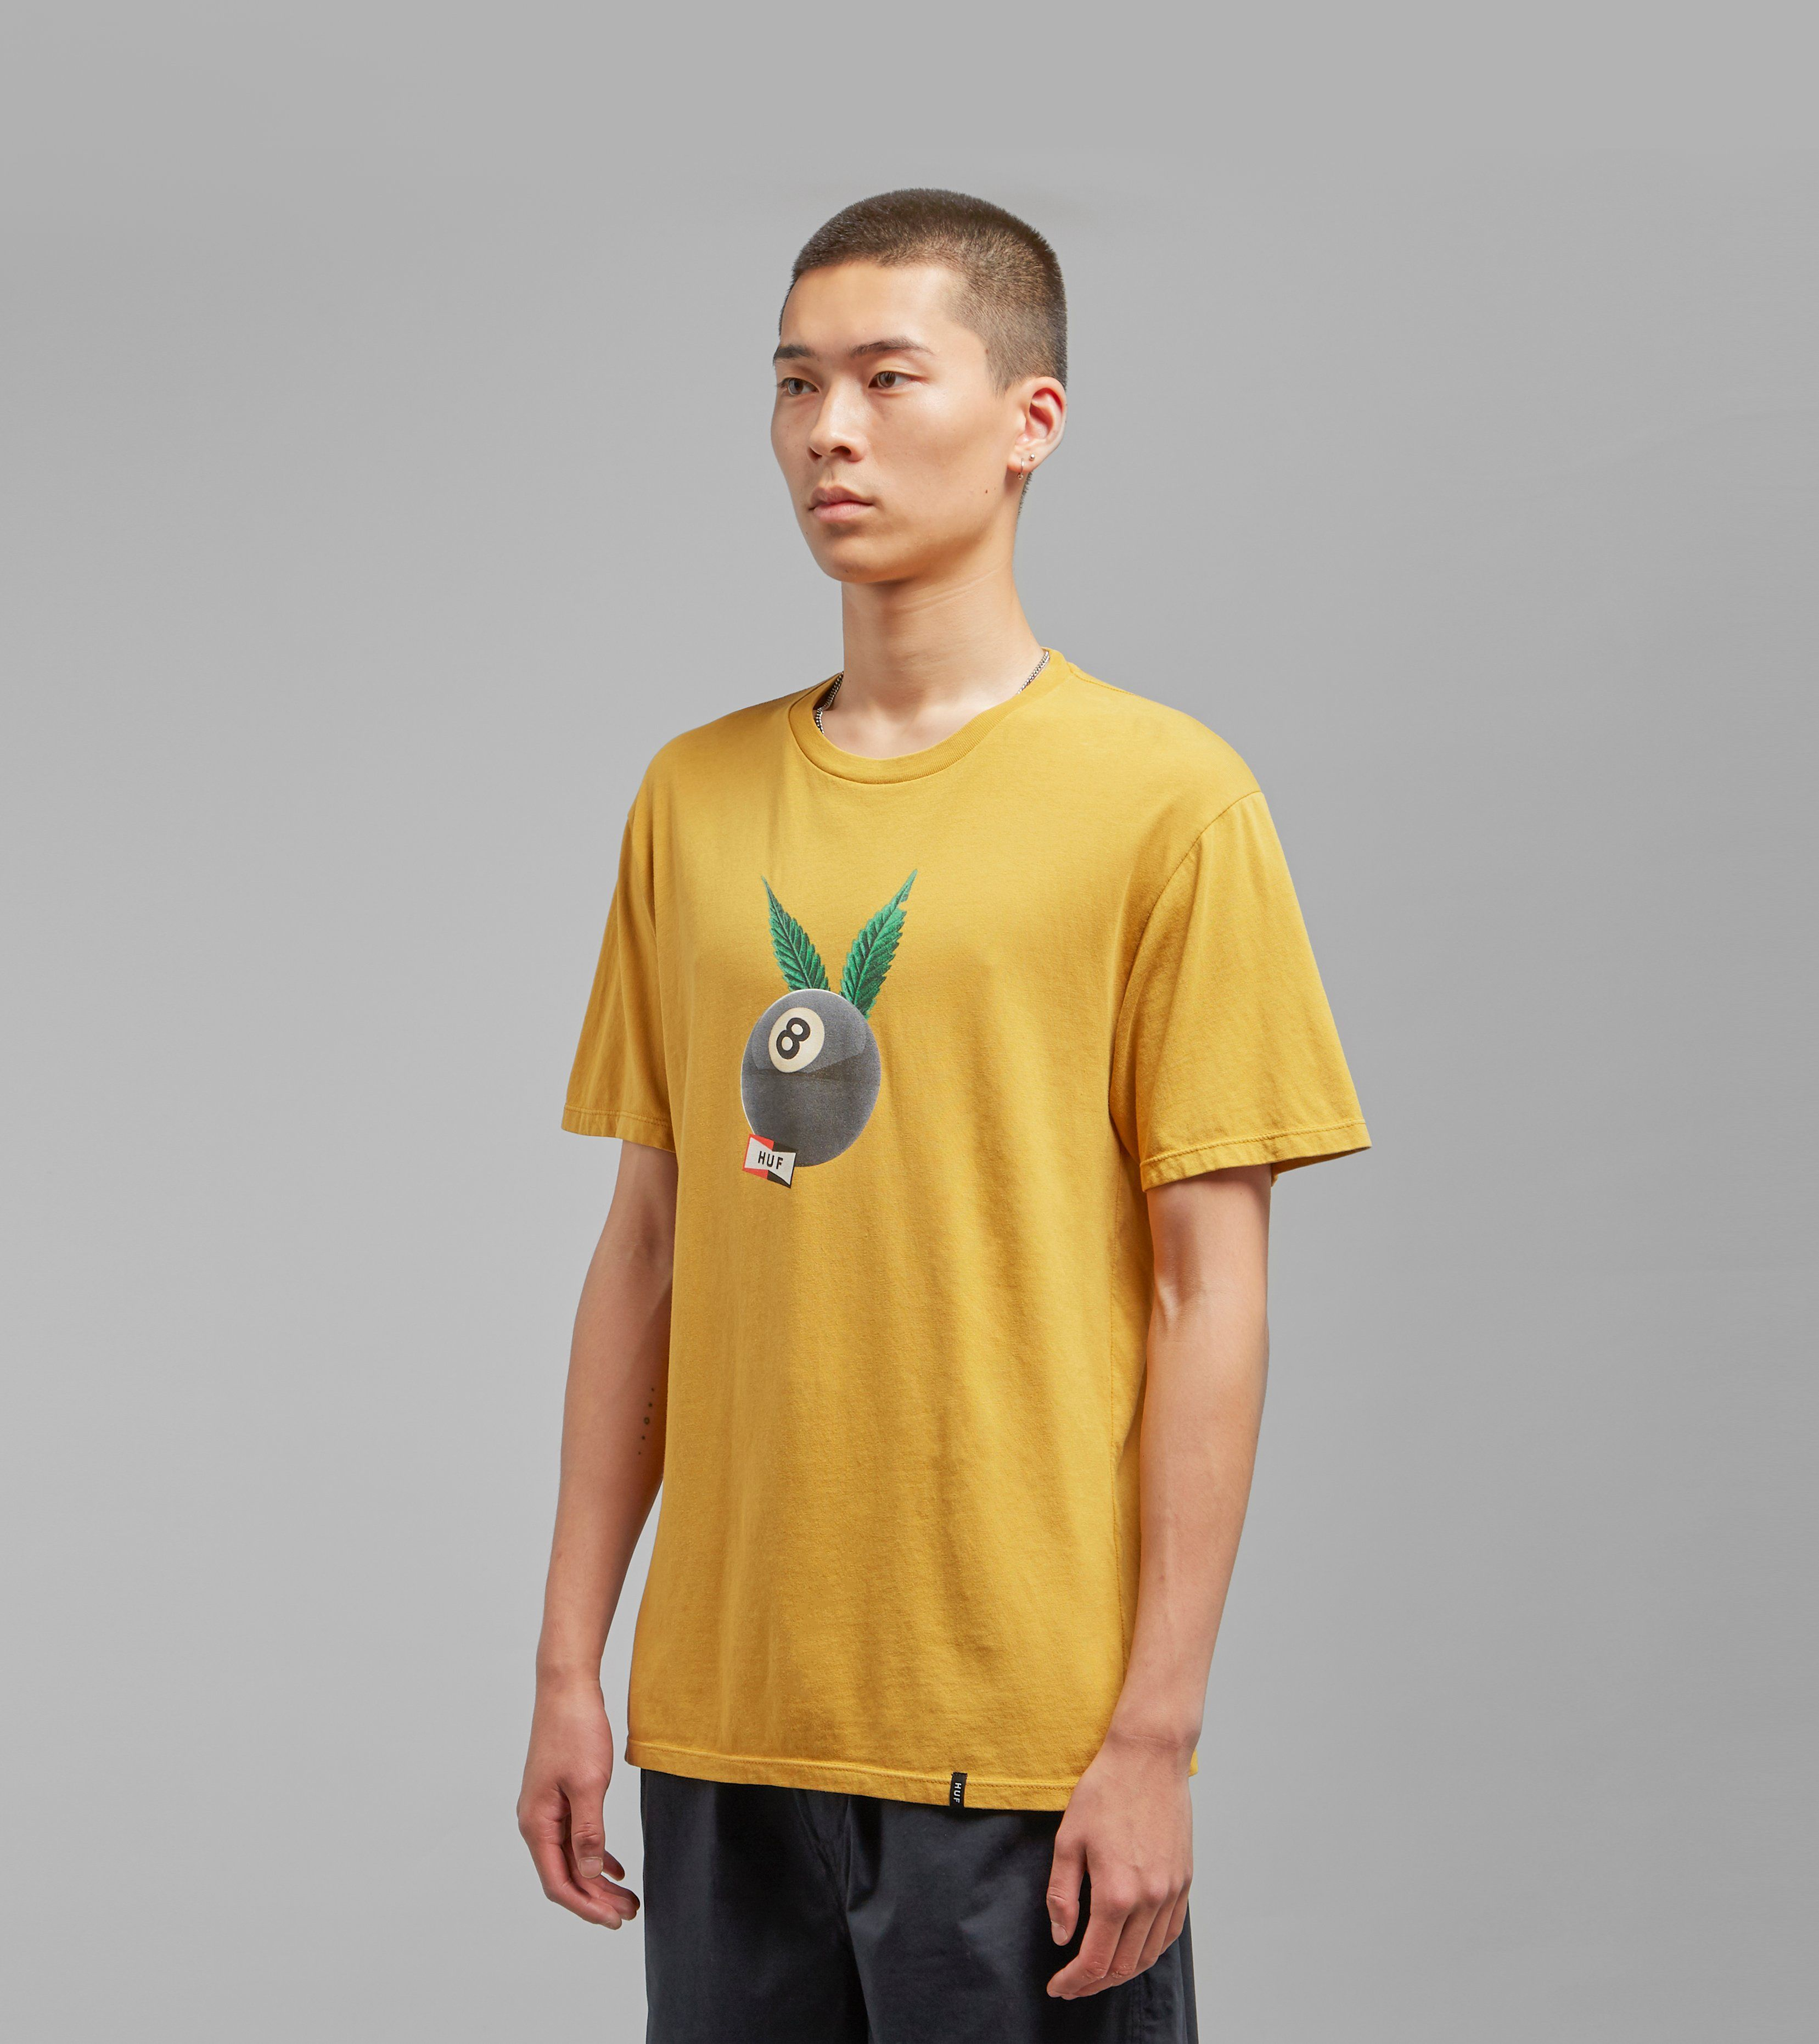 HUF International Players - size? Exclusive